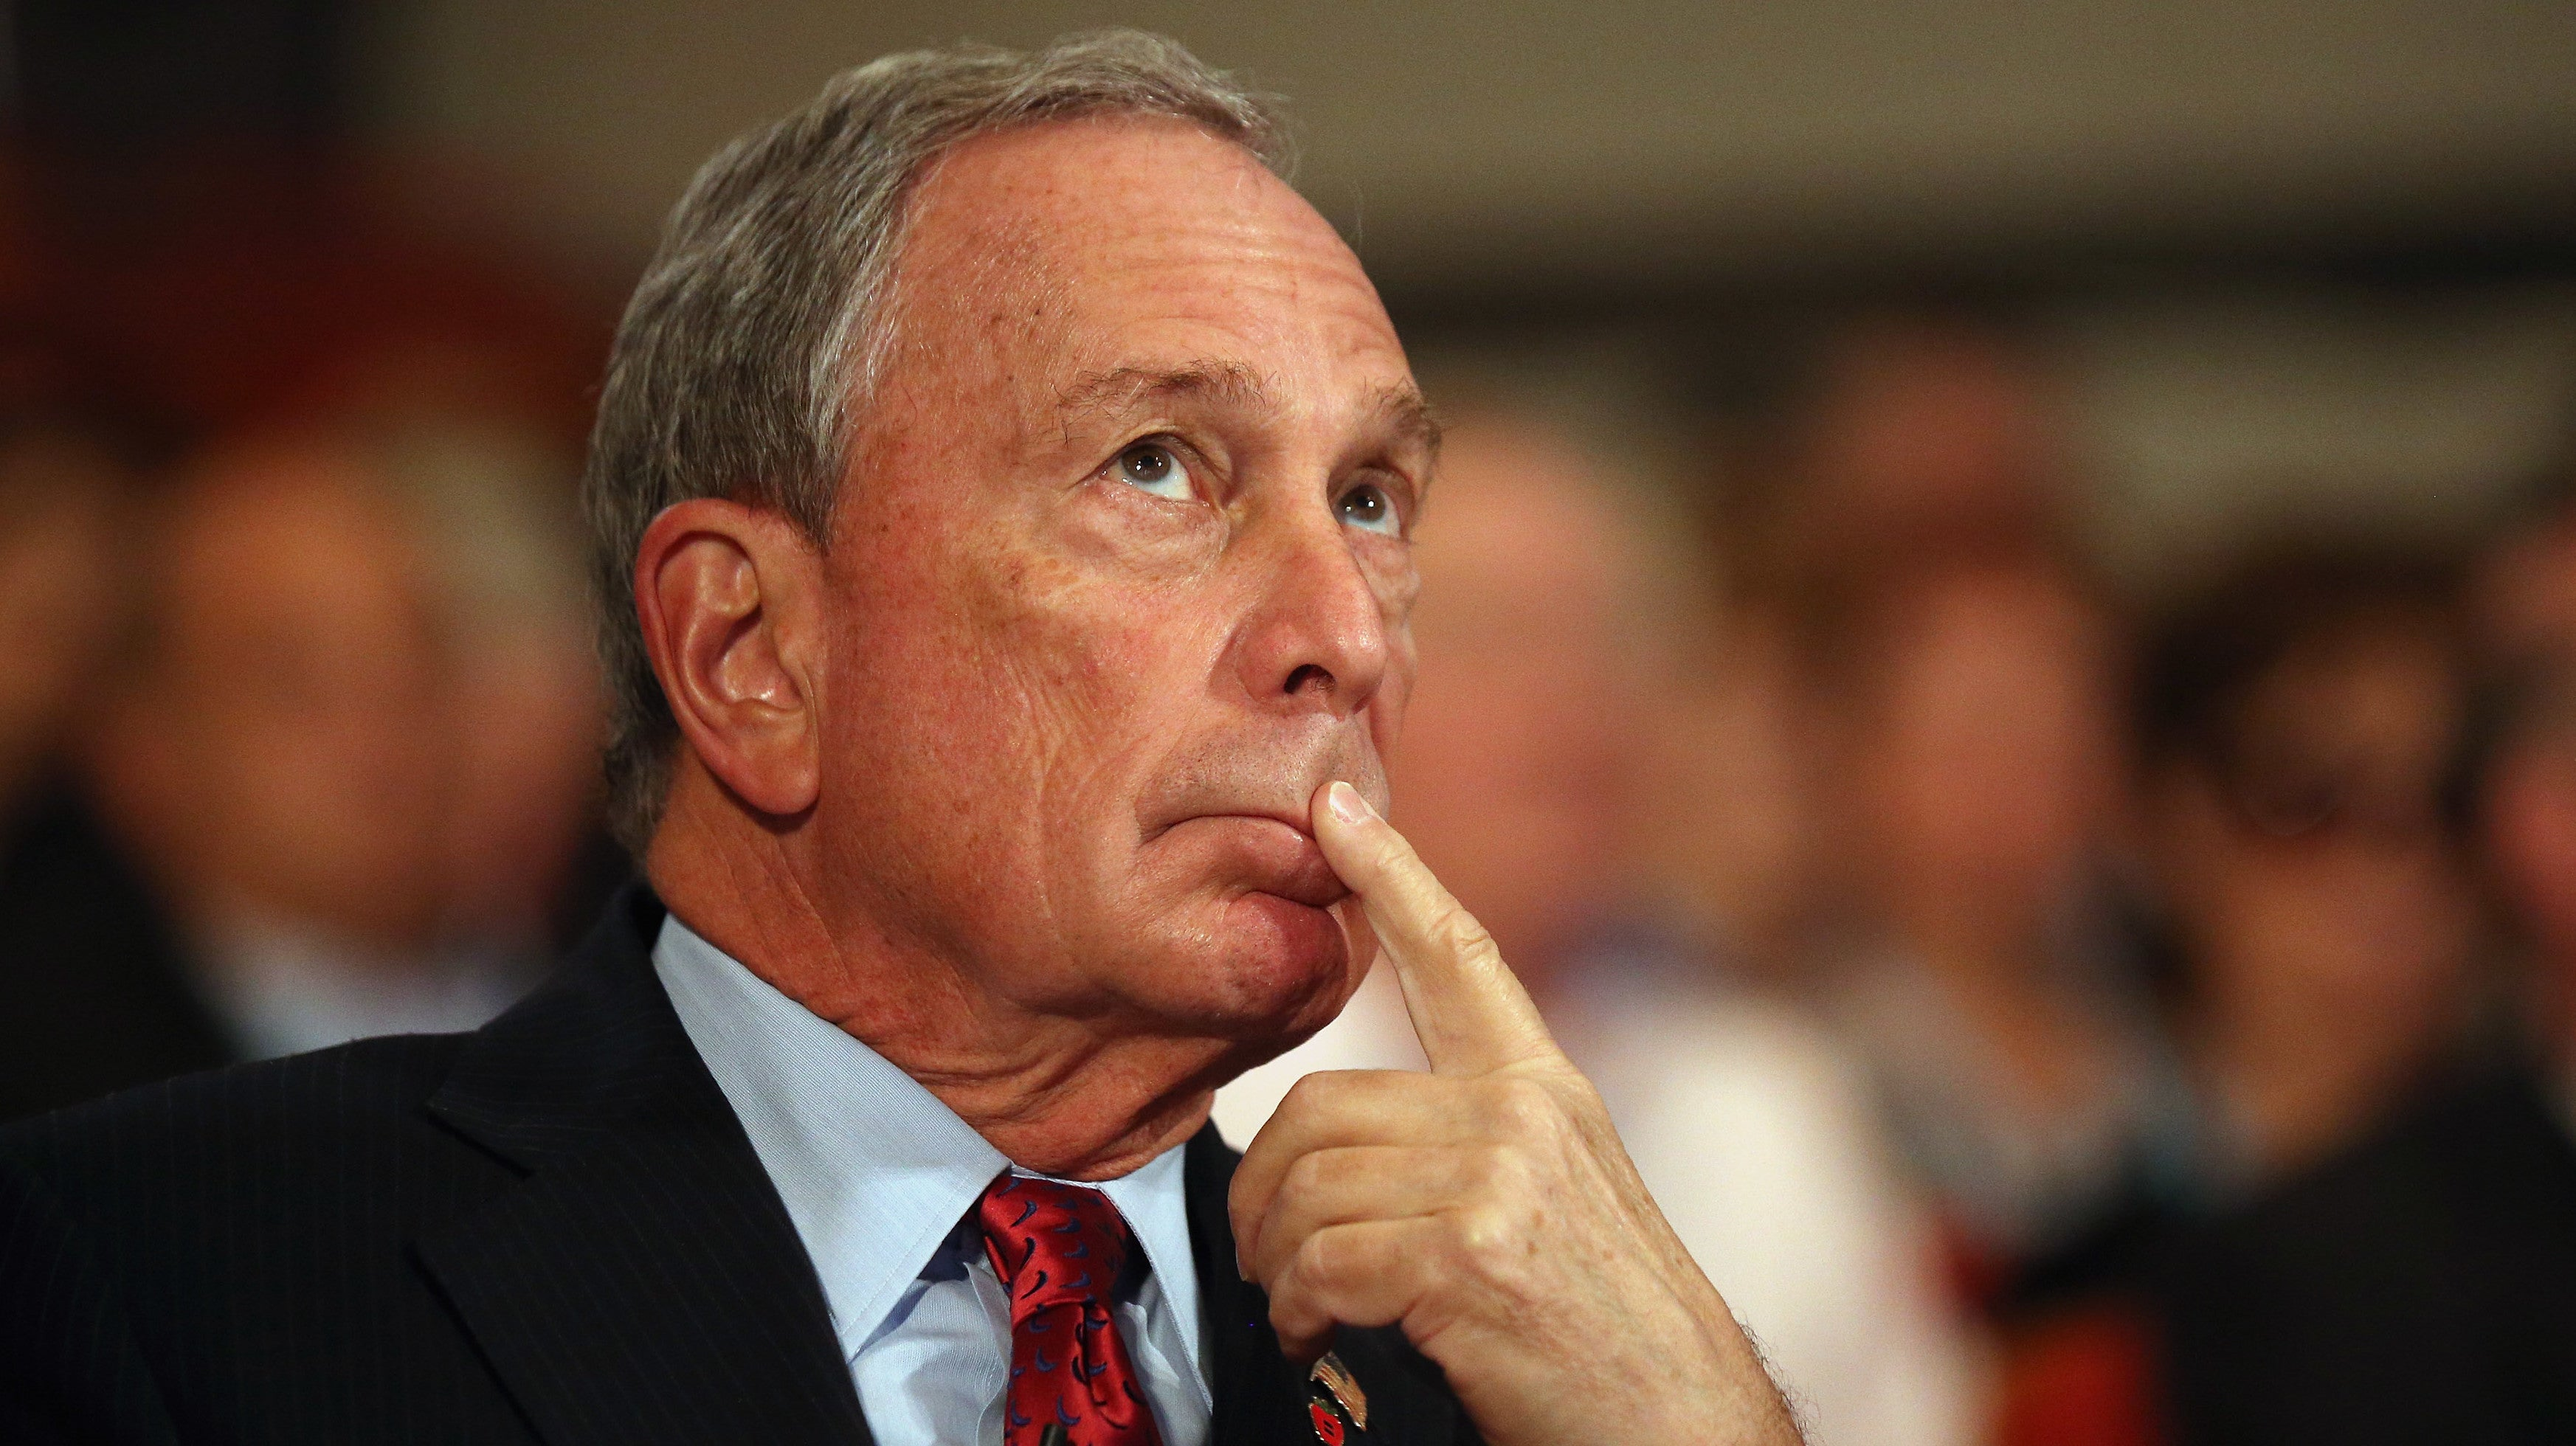 Report: Mike Bloomberg's Campaign Quietly Pouring Millions Into A Tech Firm He Founded This Year